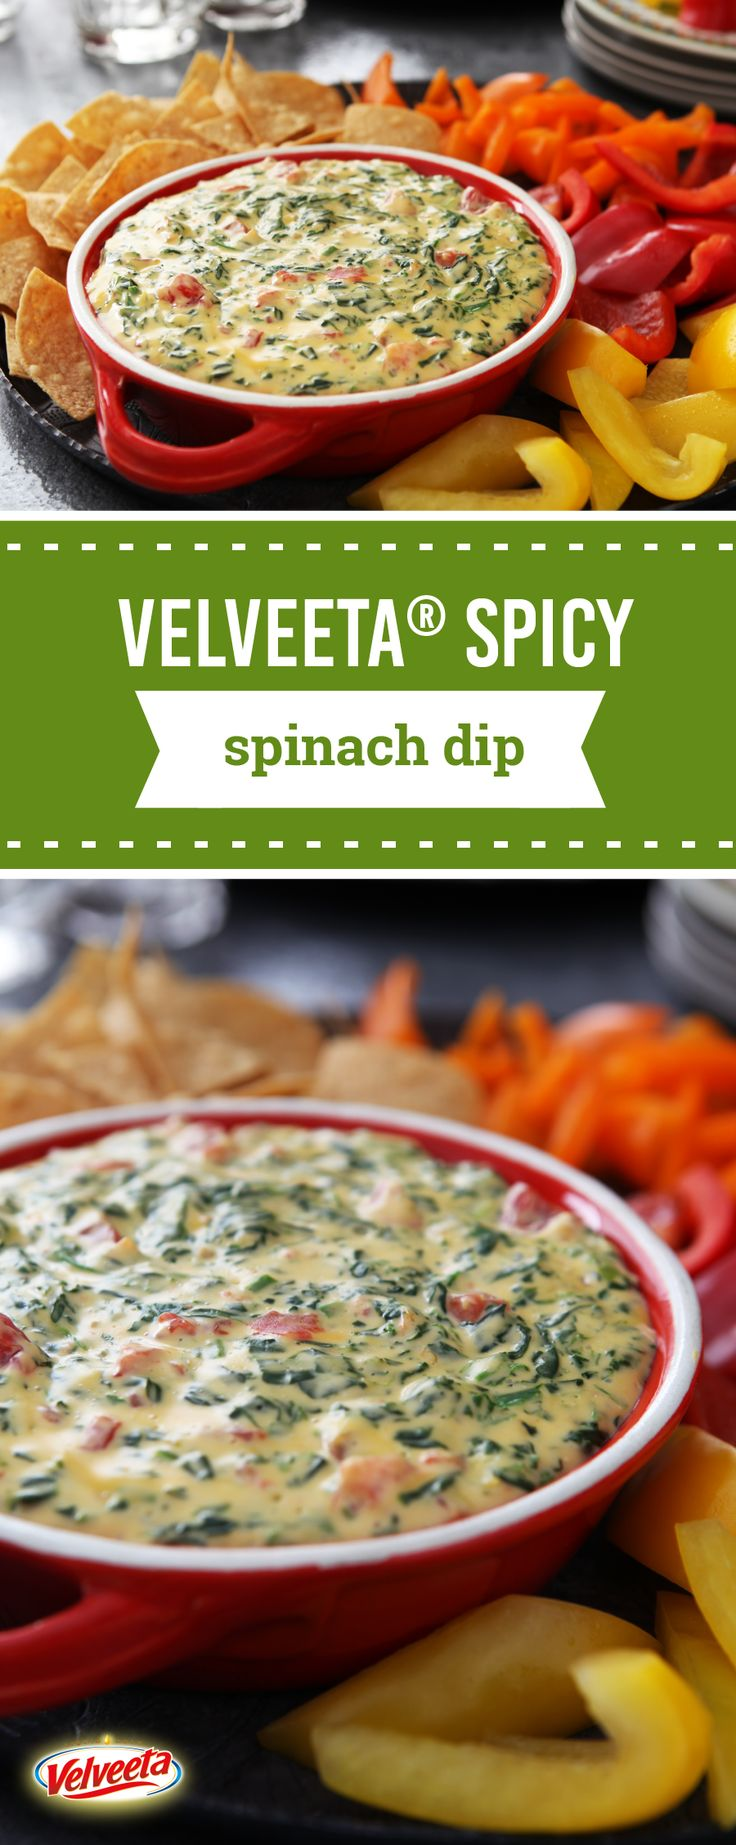 VELVEETA® Spicy Spinach Dip – This spicy spinach dip gets its kick from diced tomatoes & green chilies—and its smooth, creamy texture from VELVEETA® and cream cheese. Ready in 15 minutes, make sure to save this appetizer recipe for all the holiday entertaining you have coming up.